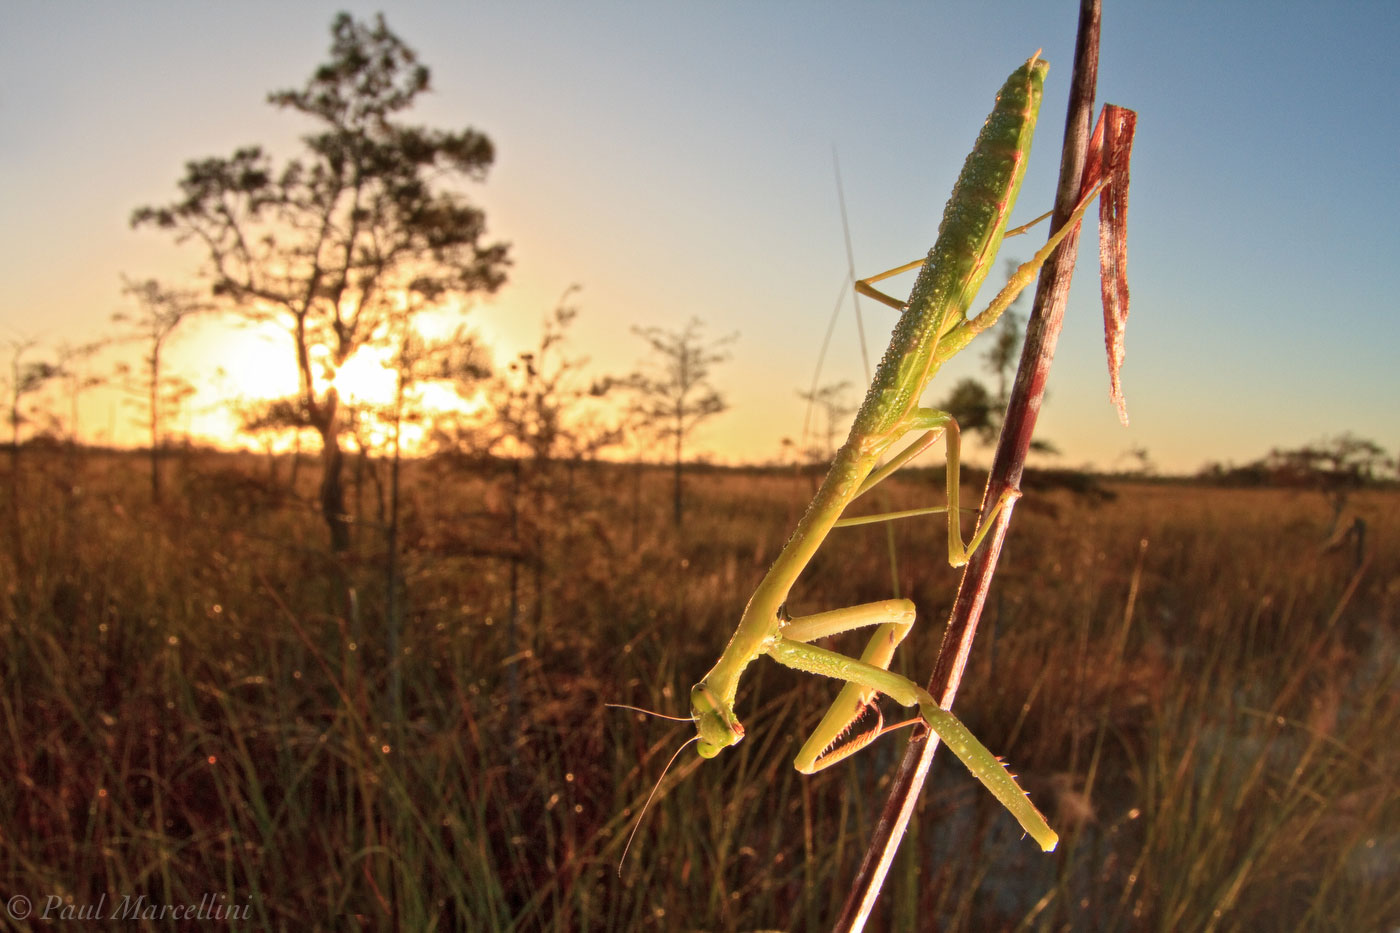 preying mantis, everglades national park, sun, photo